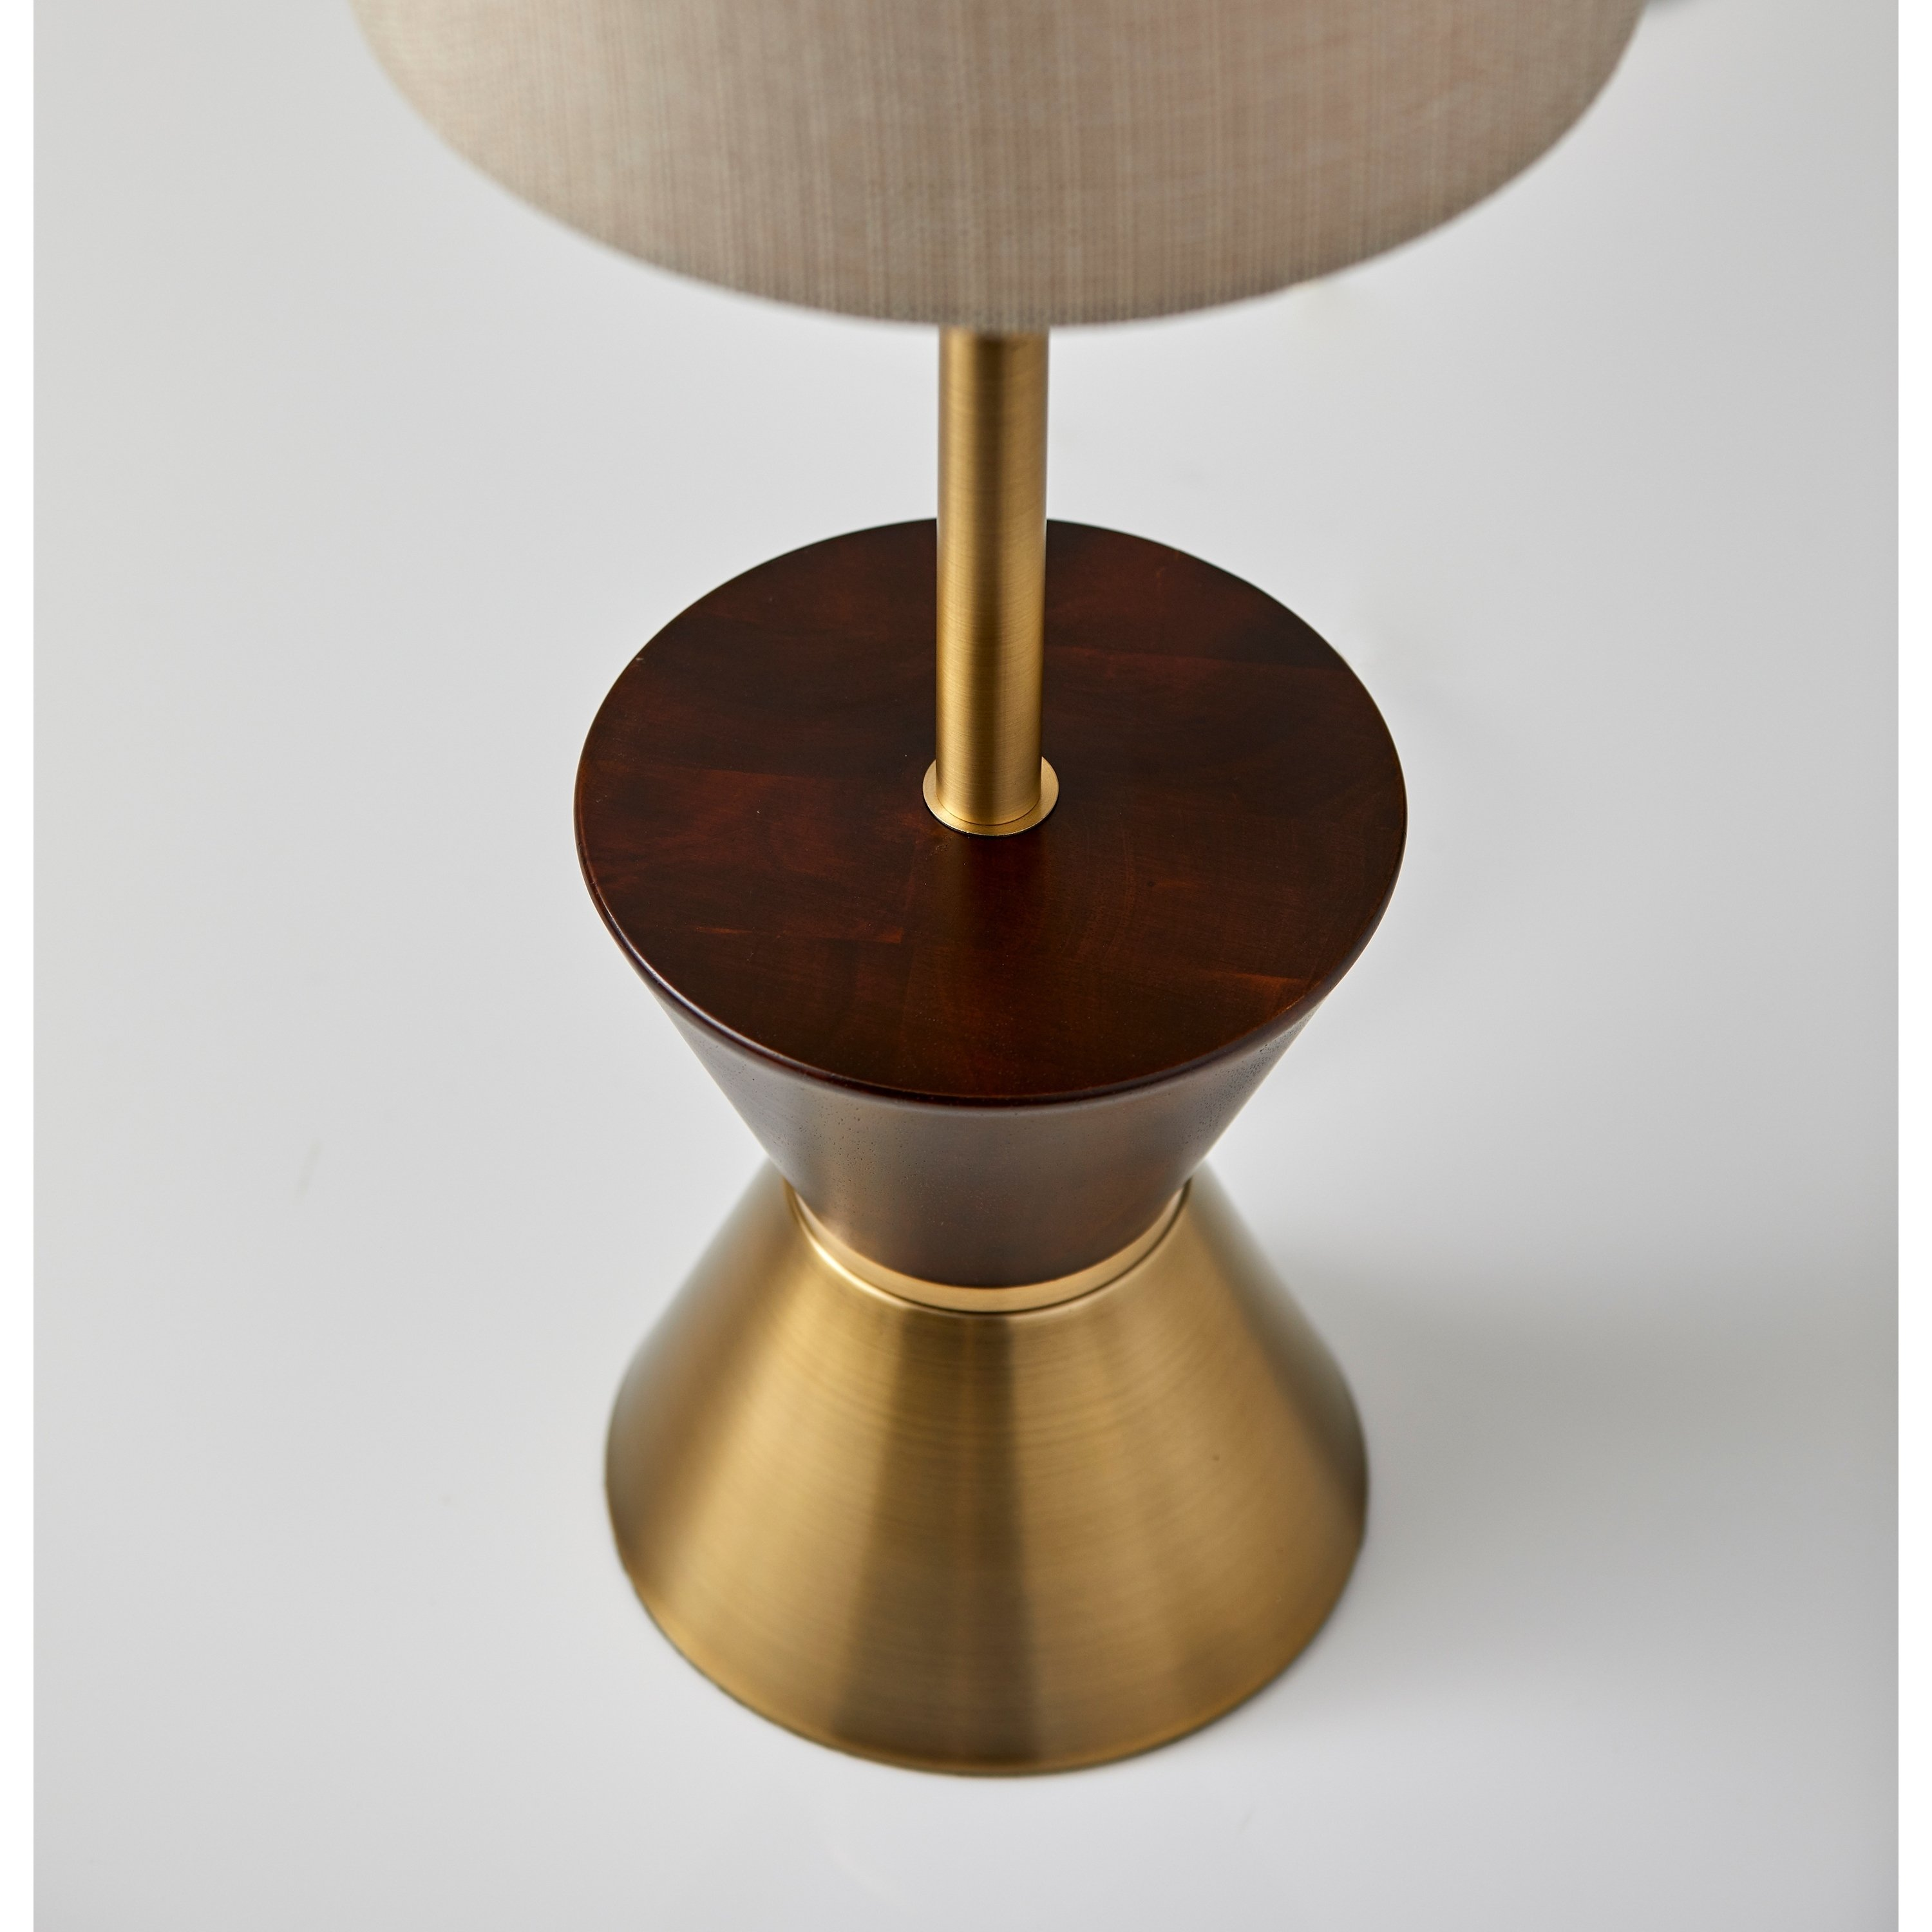 adesso antique brass and walnut rubberwood carmen table lamp metal accent free shipping today replica eames dining modern classic furniture reproductions indoor nautical wall